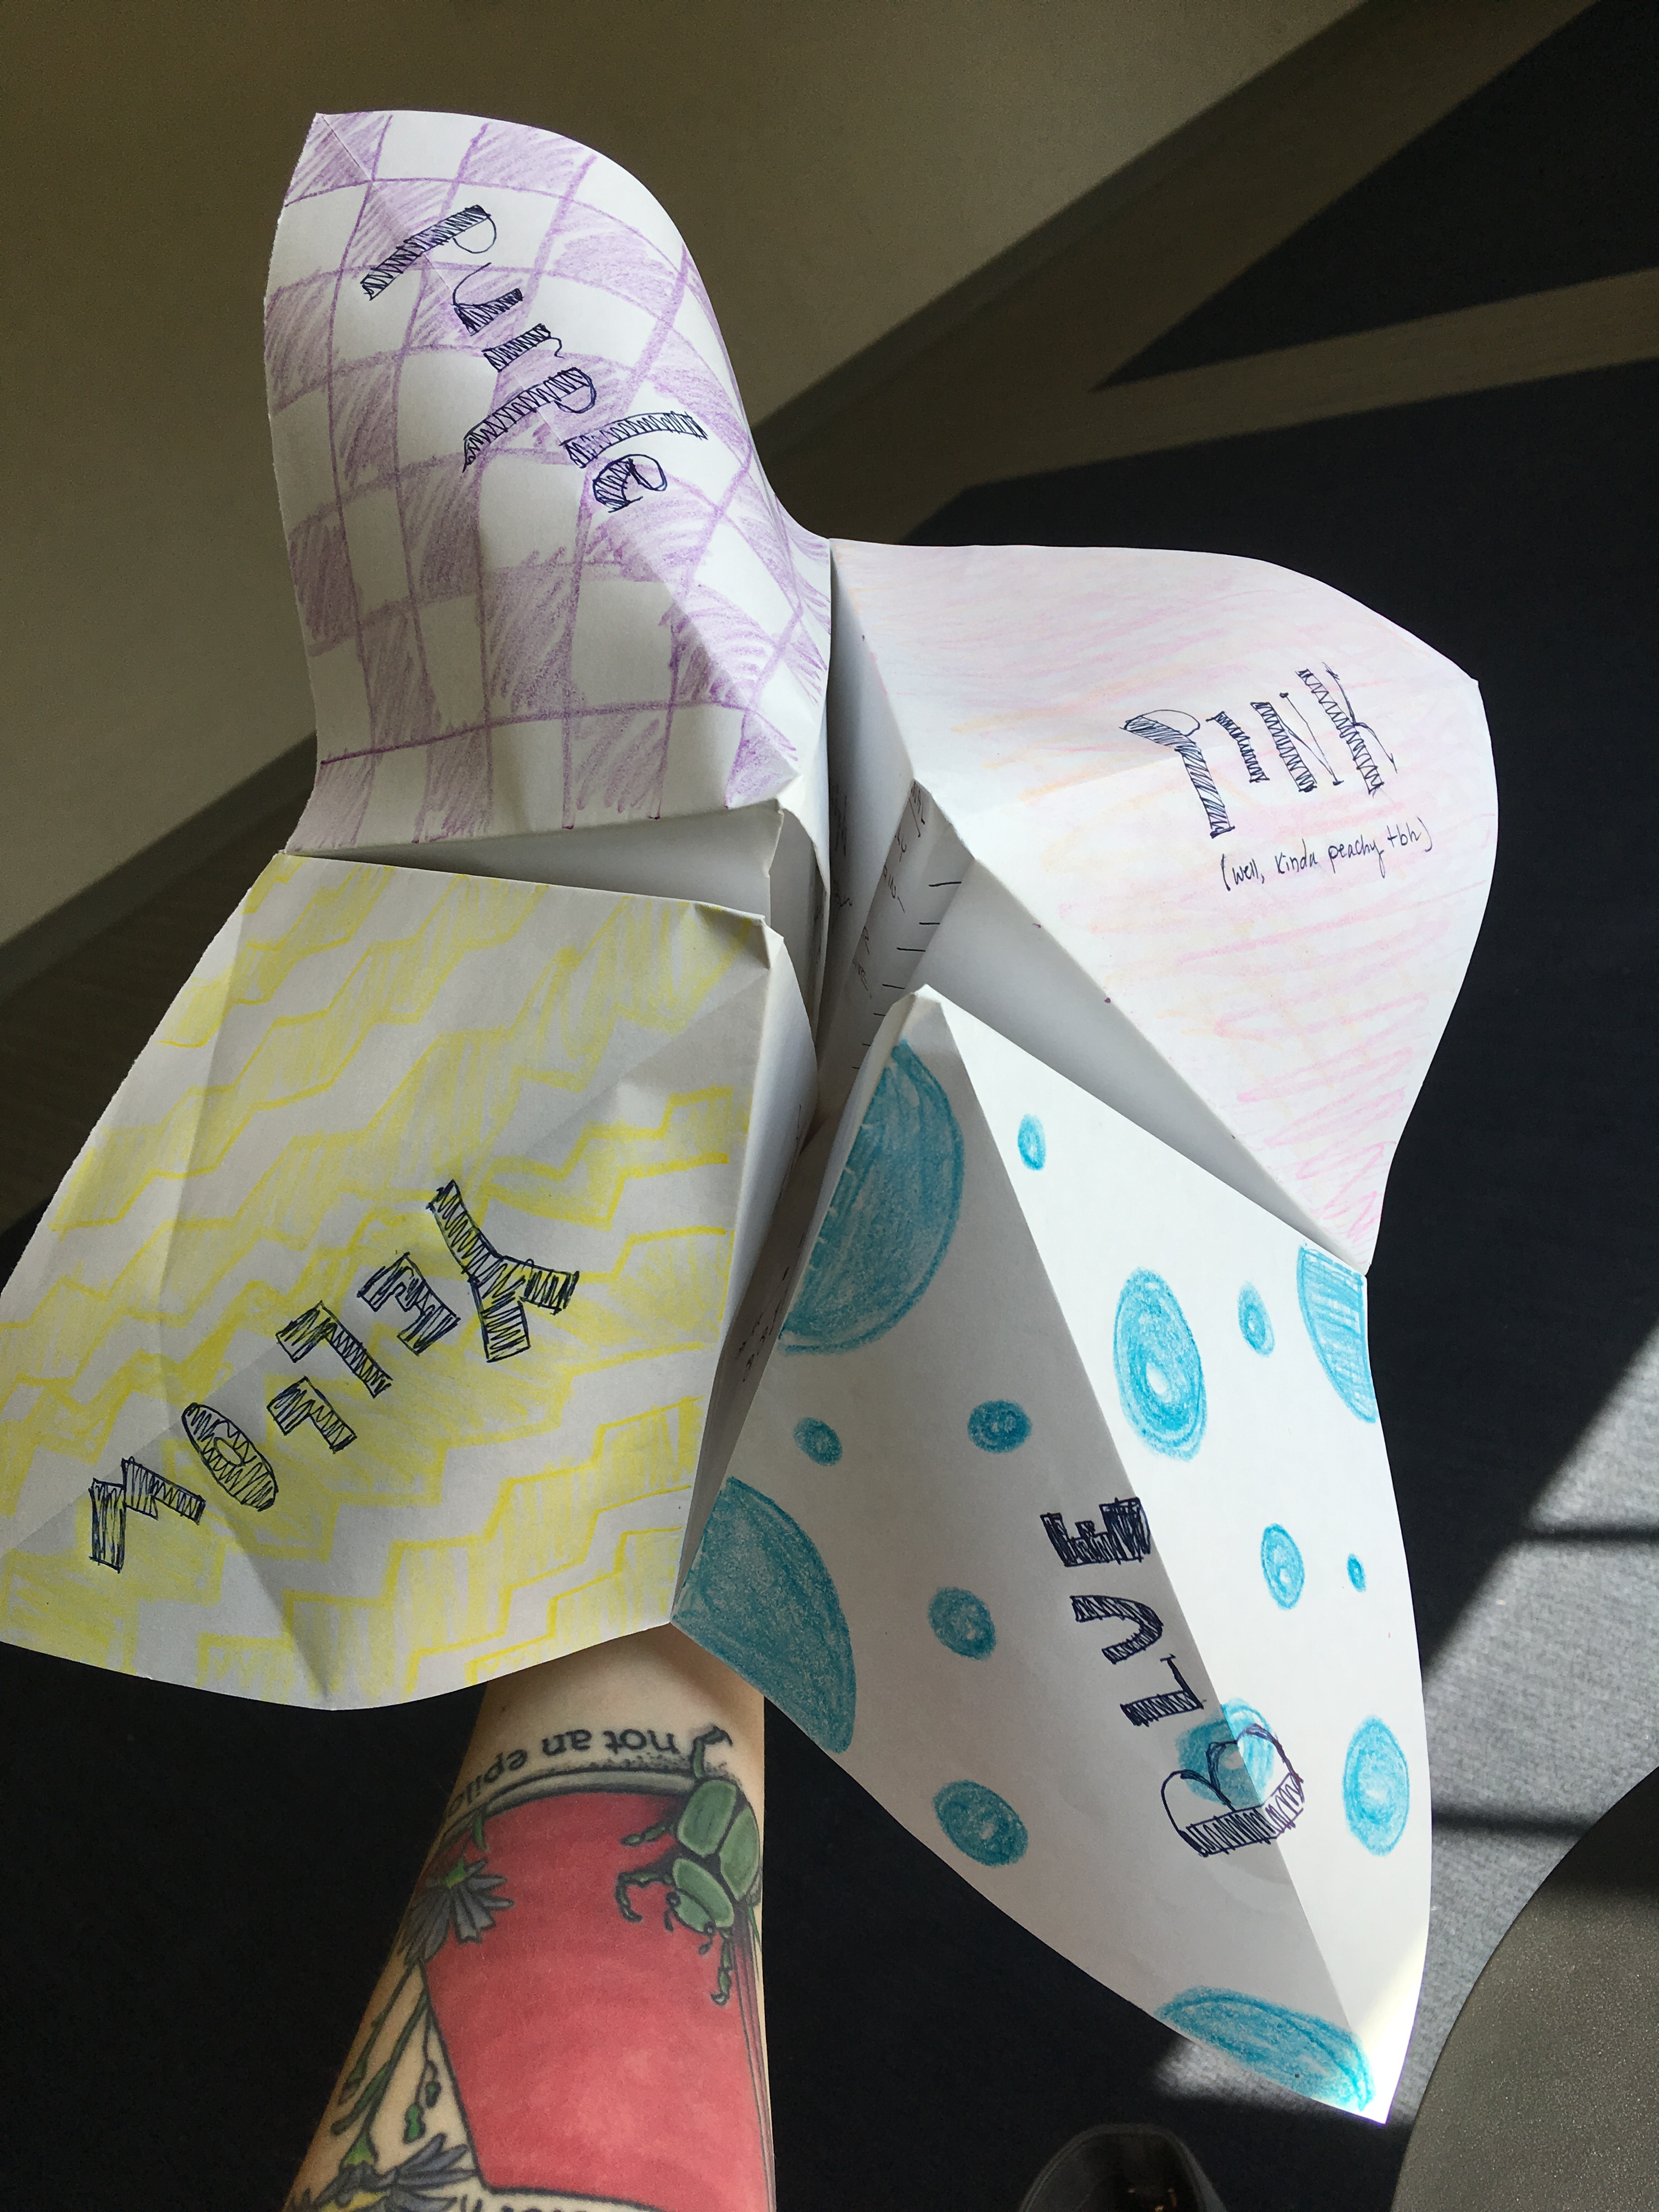 A very large cootie catcher with blue, yellow, purple, and pink written on its sections, over patterns of the same colors.